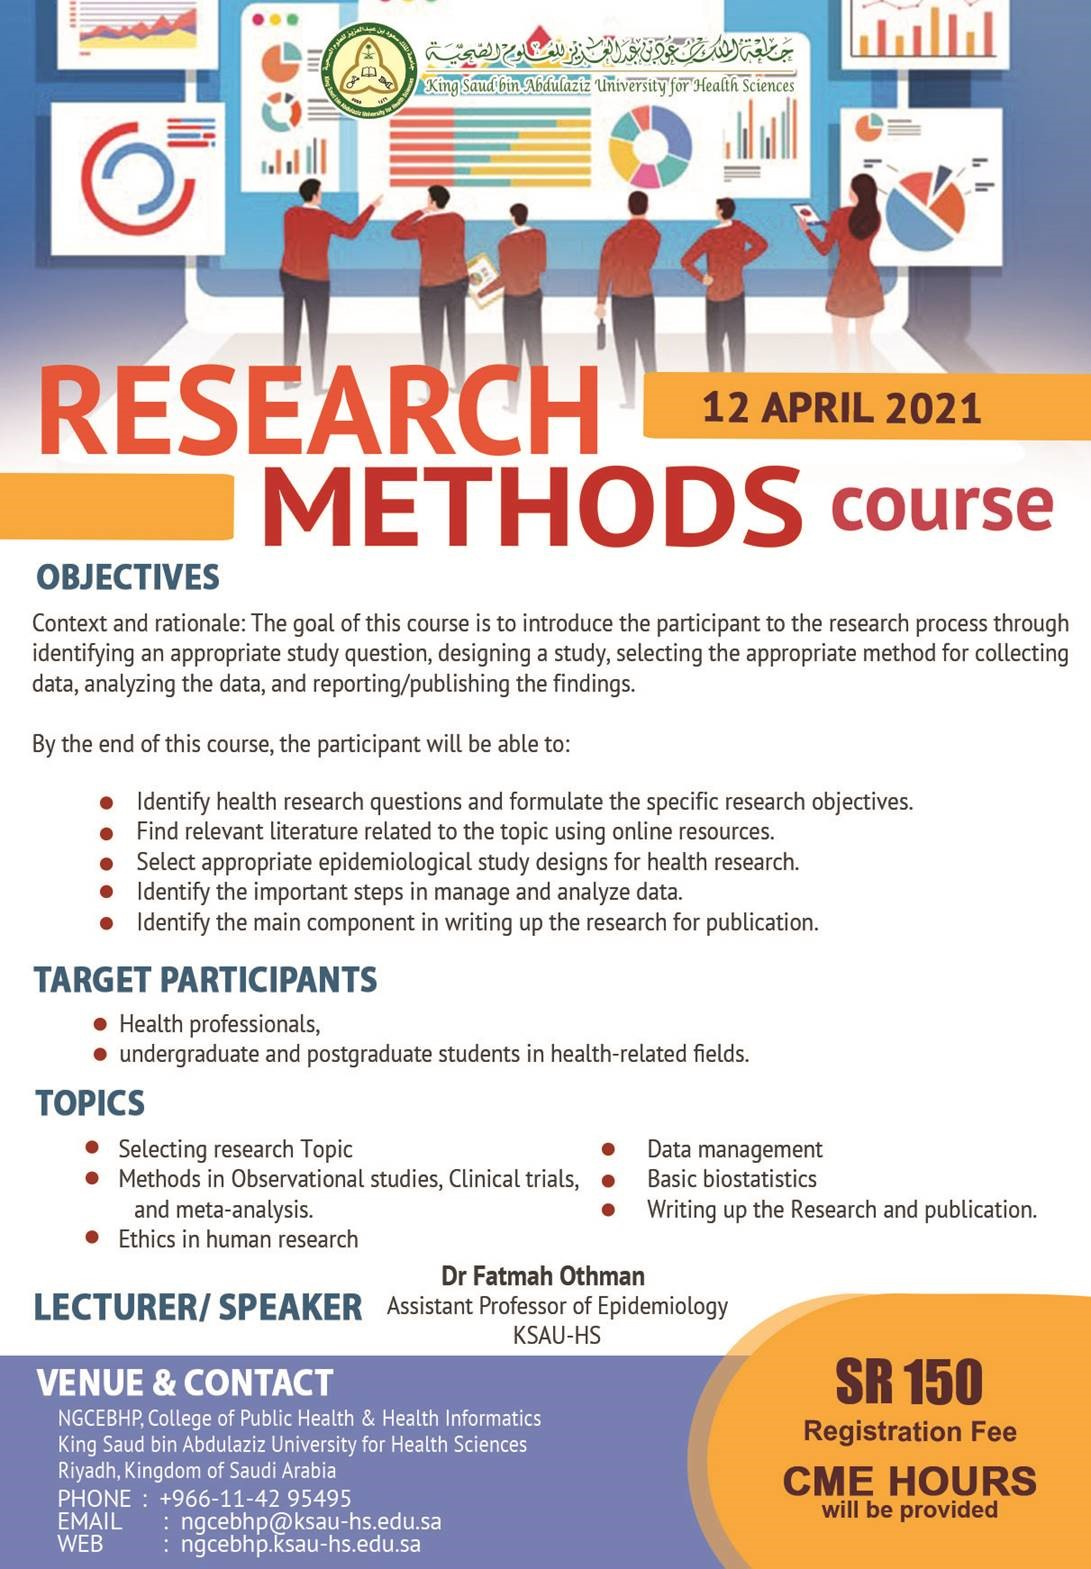 (RESEARCH METHODS COURSE (12 APR 2021